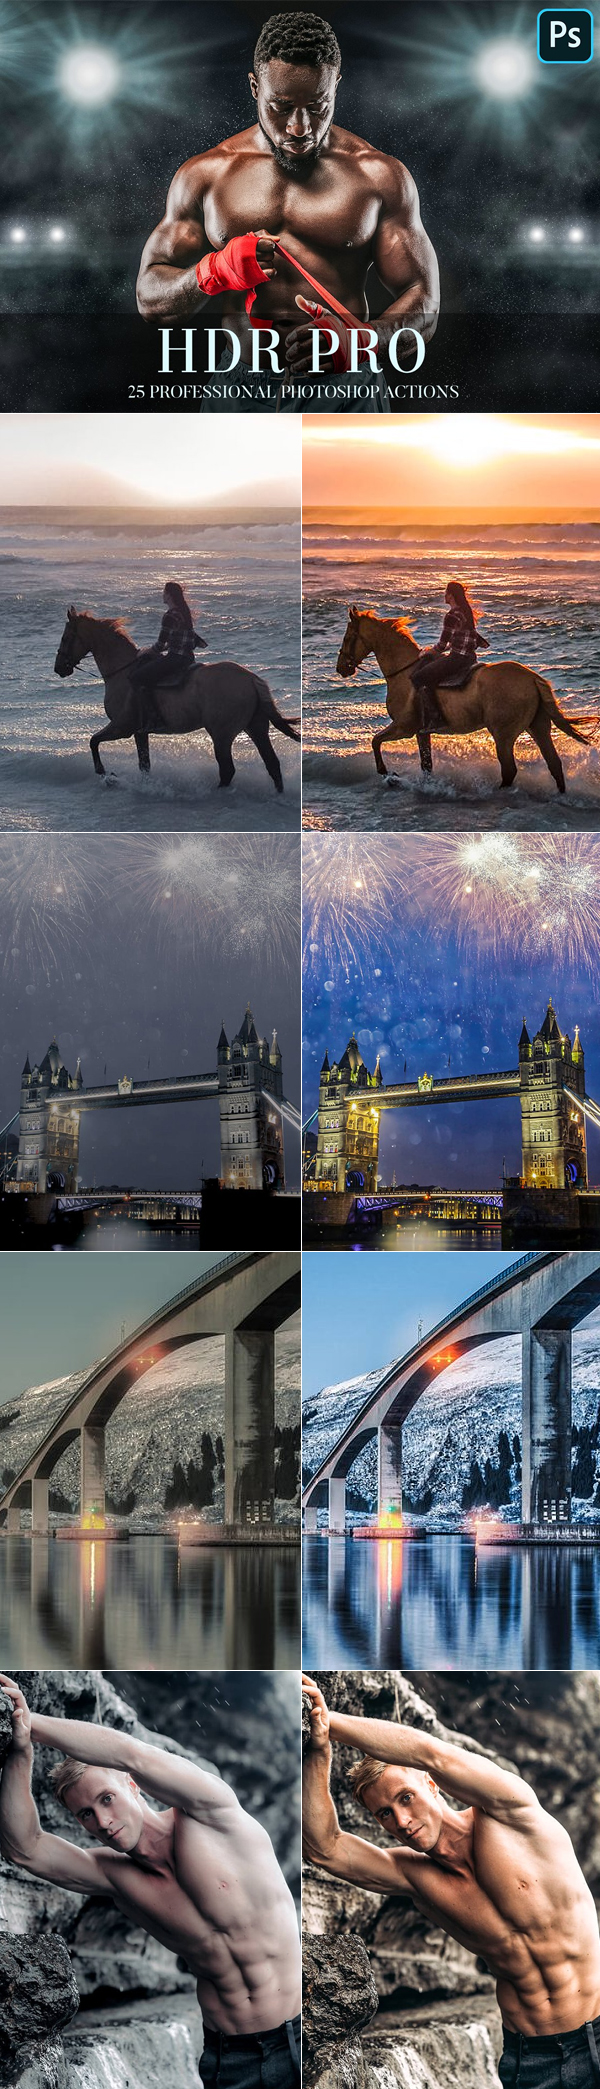 Photoshop Actions - HDR Pro